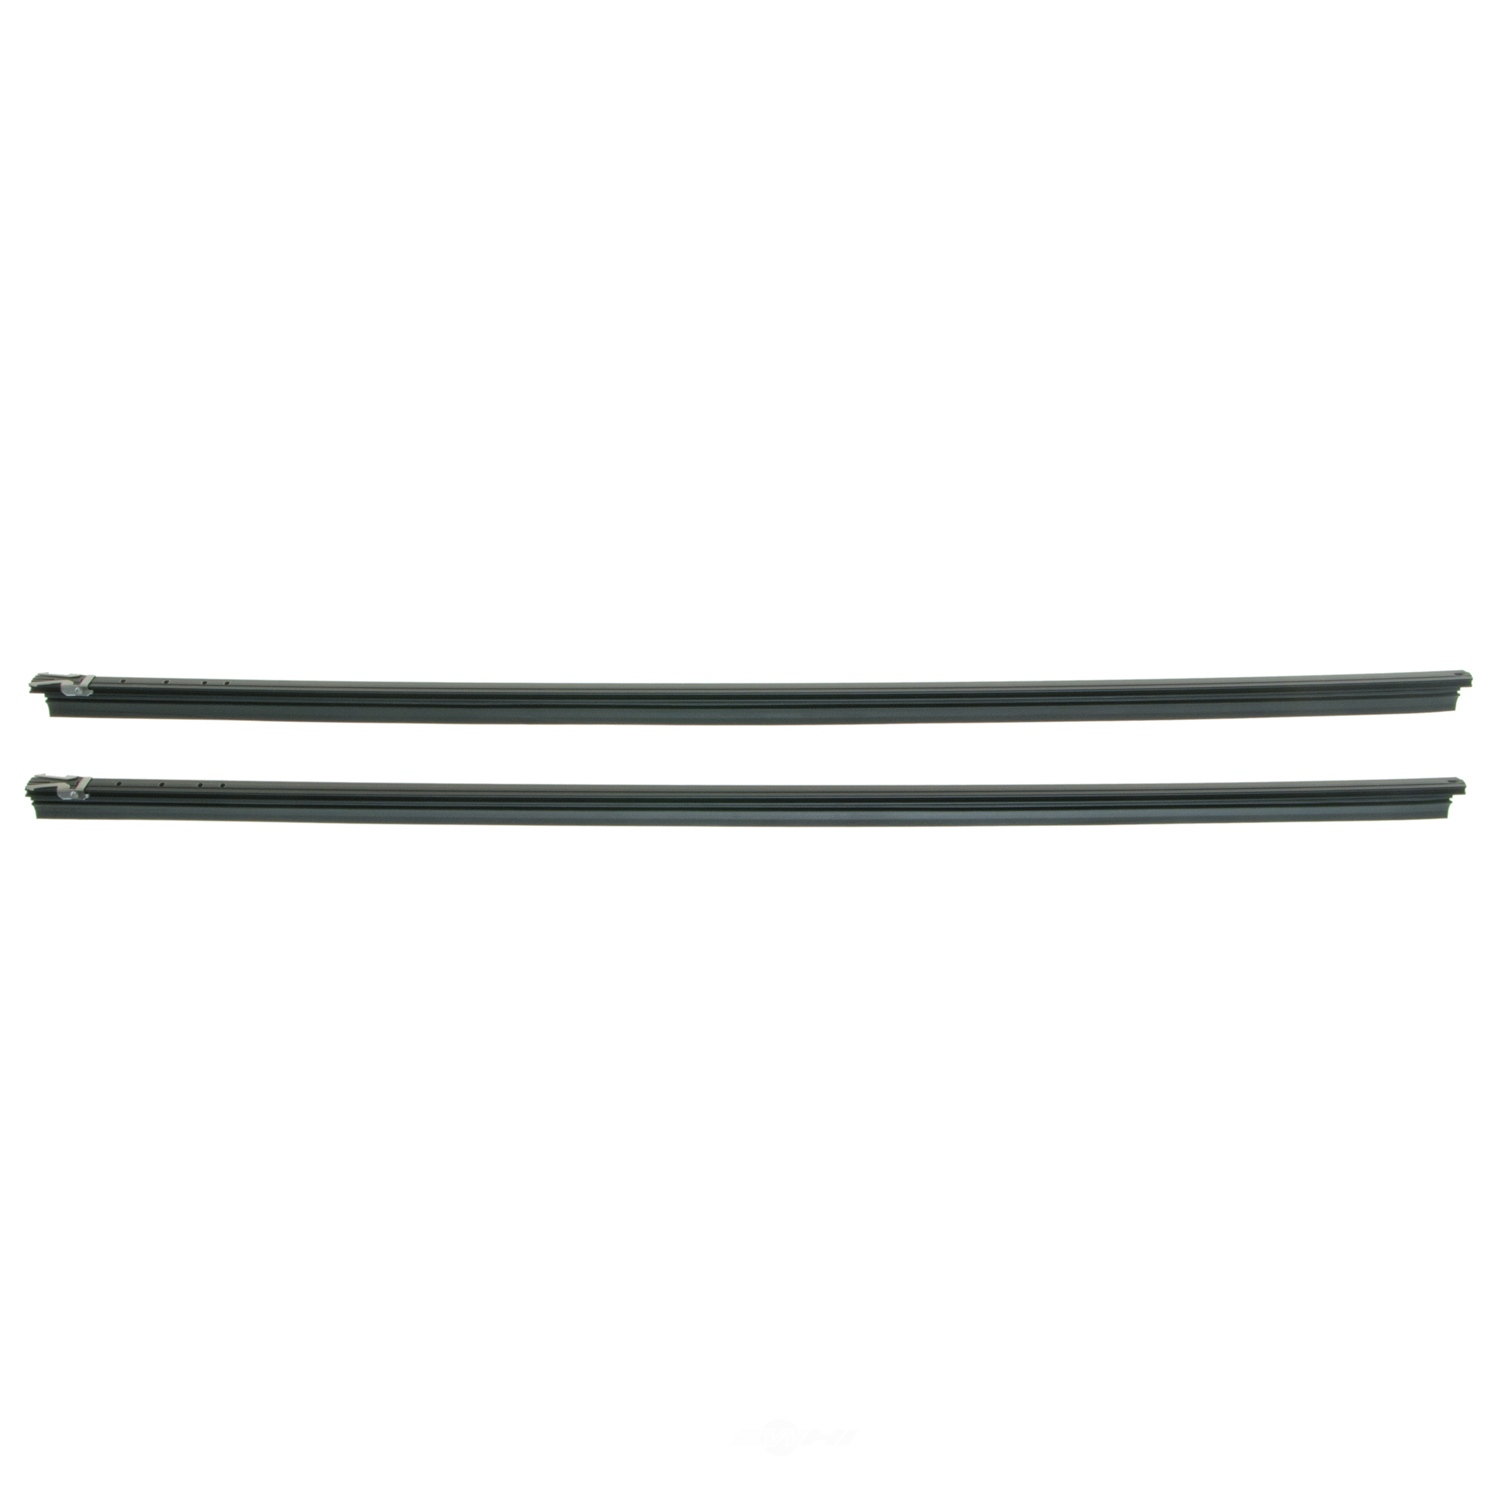 ANCO WIPER PRODUCTS - Universal Series Refills - ANC U-16R